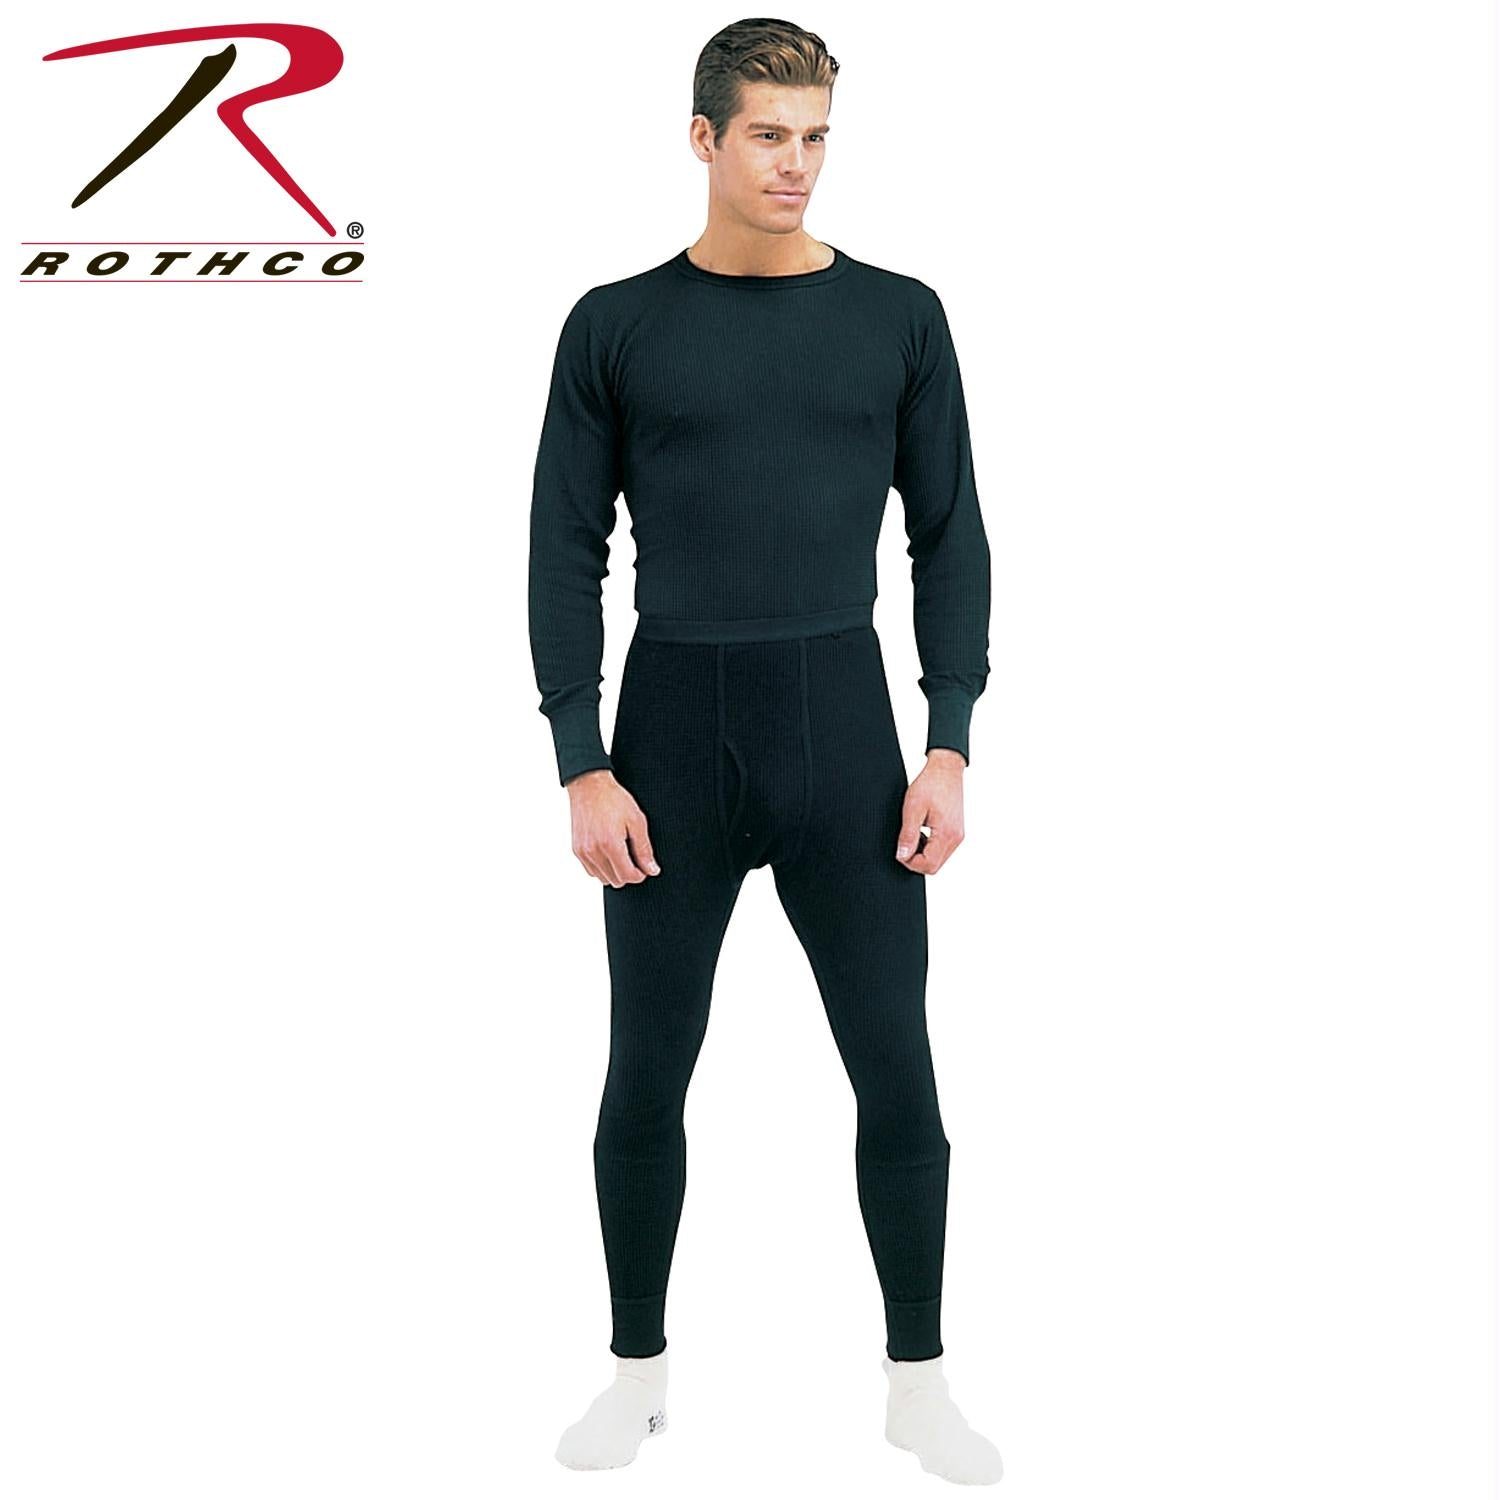 Rothco Thermal Knit Underwear Top - Black / L